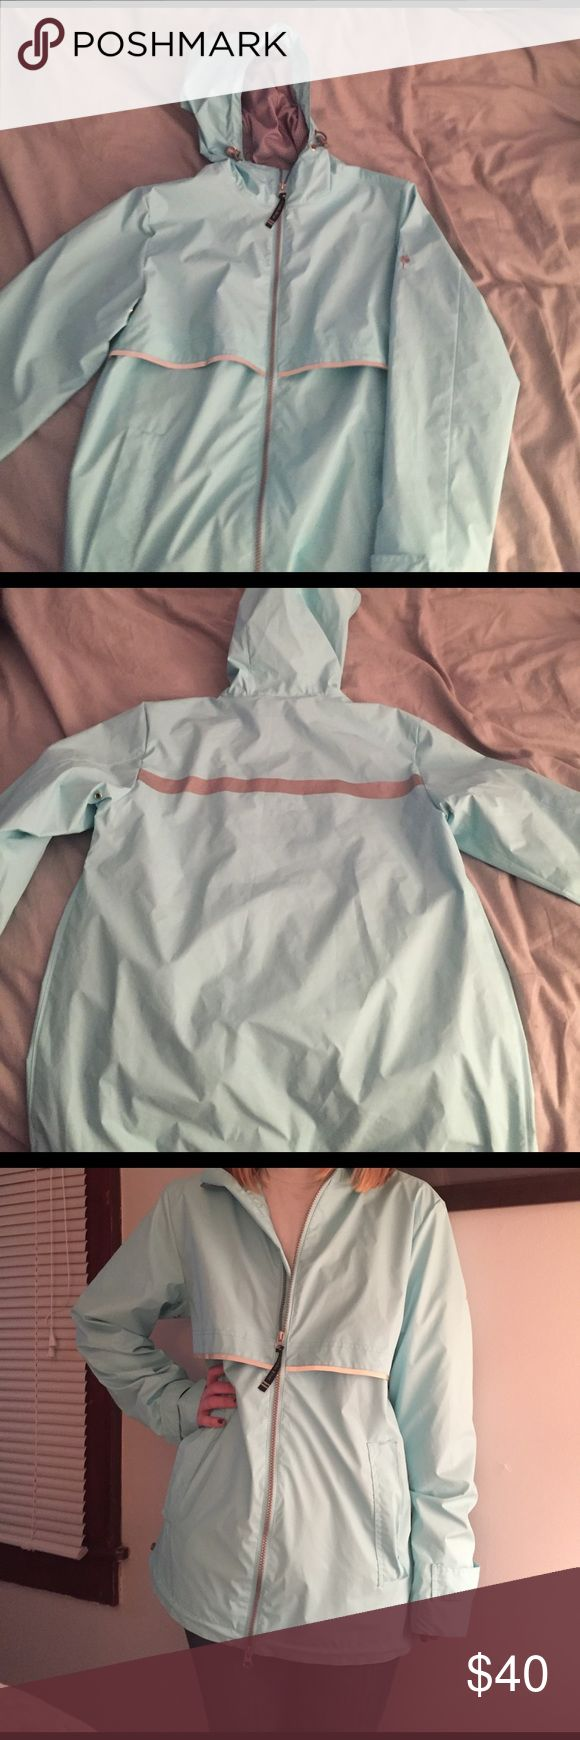 Tiffany blue rain jacket Super cute slightly oversized real rain jacket. These are adorable monogrammed! Only worn once, and selling because I have another rain jacket just like it! The first picture is just an example of what the jacket looks like, not the exact jacket or brand. Thanks for checking it out! Jackets & Coats